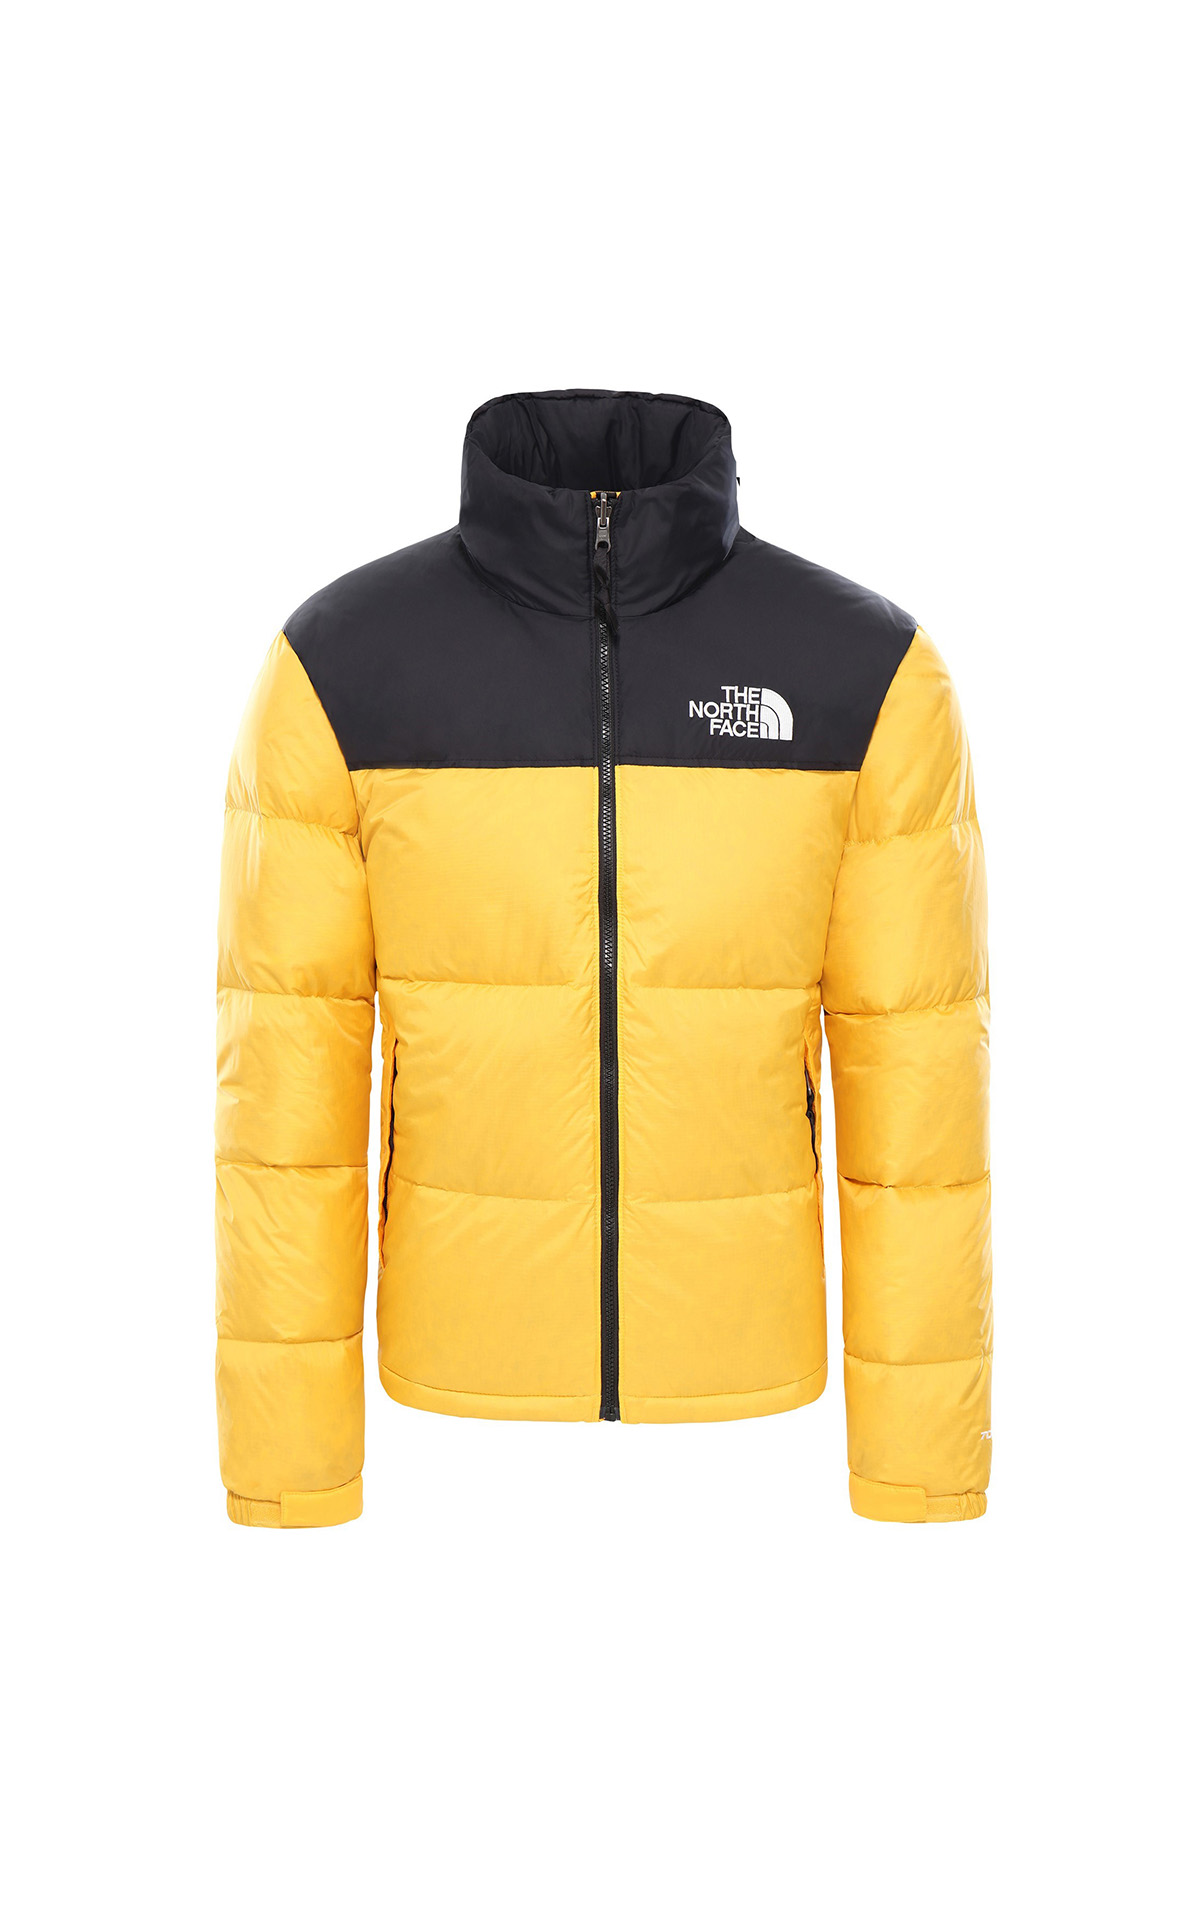 The North Face M 1996 retro nuptse yellow from Bicester Village